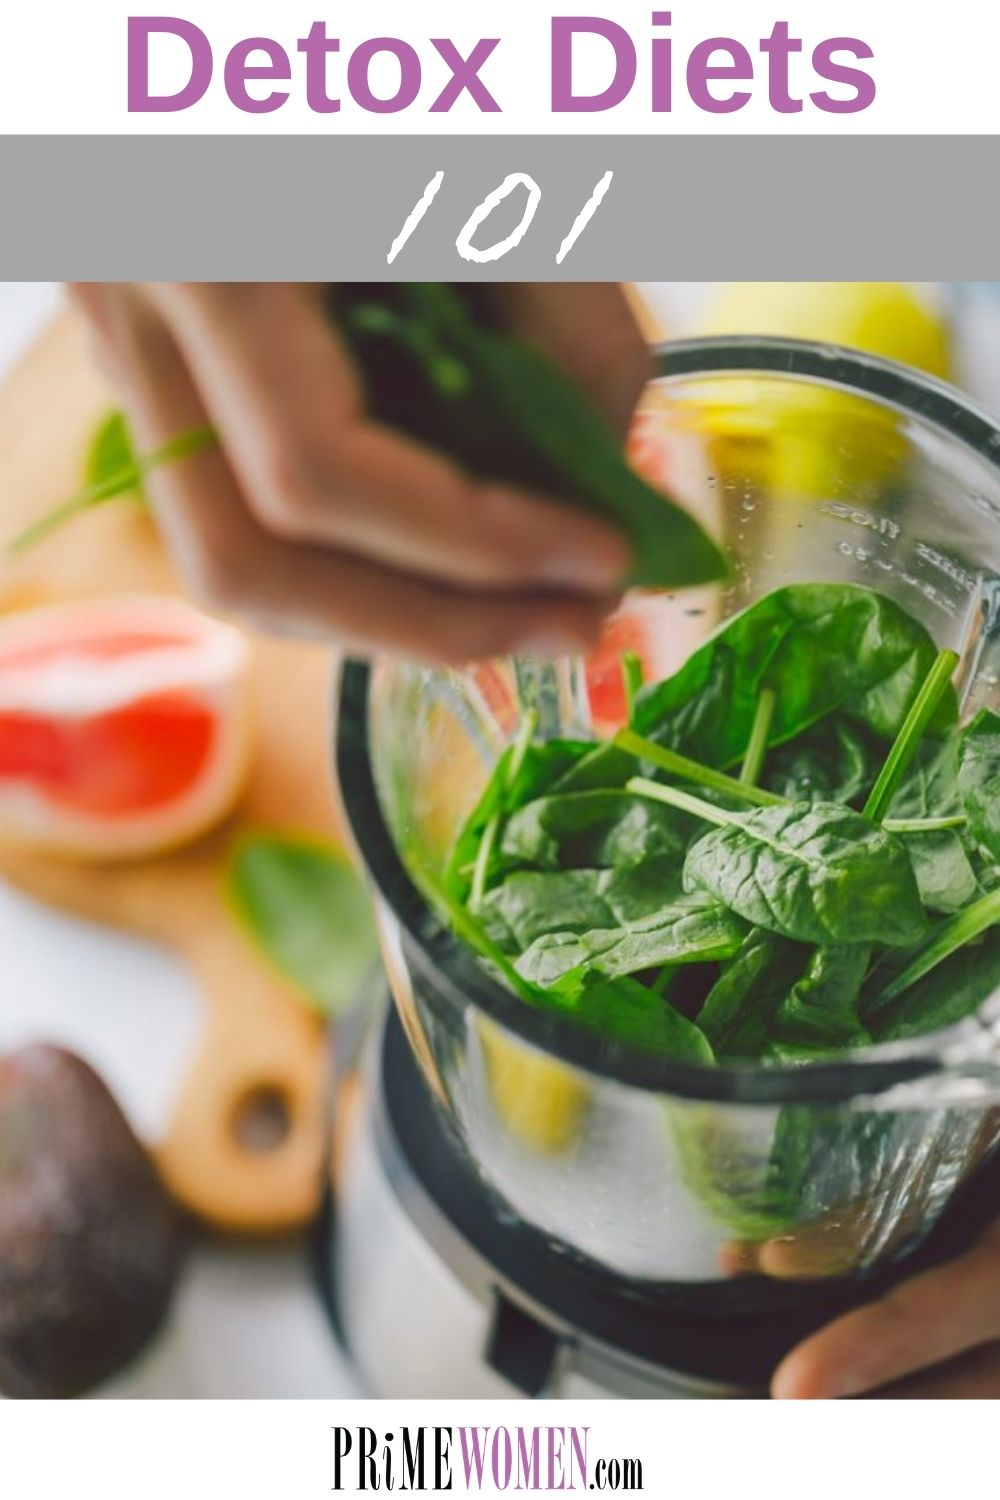 Detox Diets 101 - Everything you need to know about detox diets, including whether or not they work.